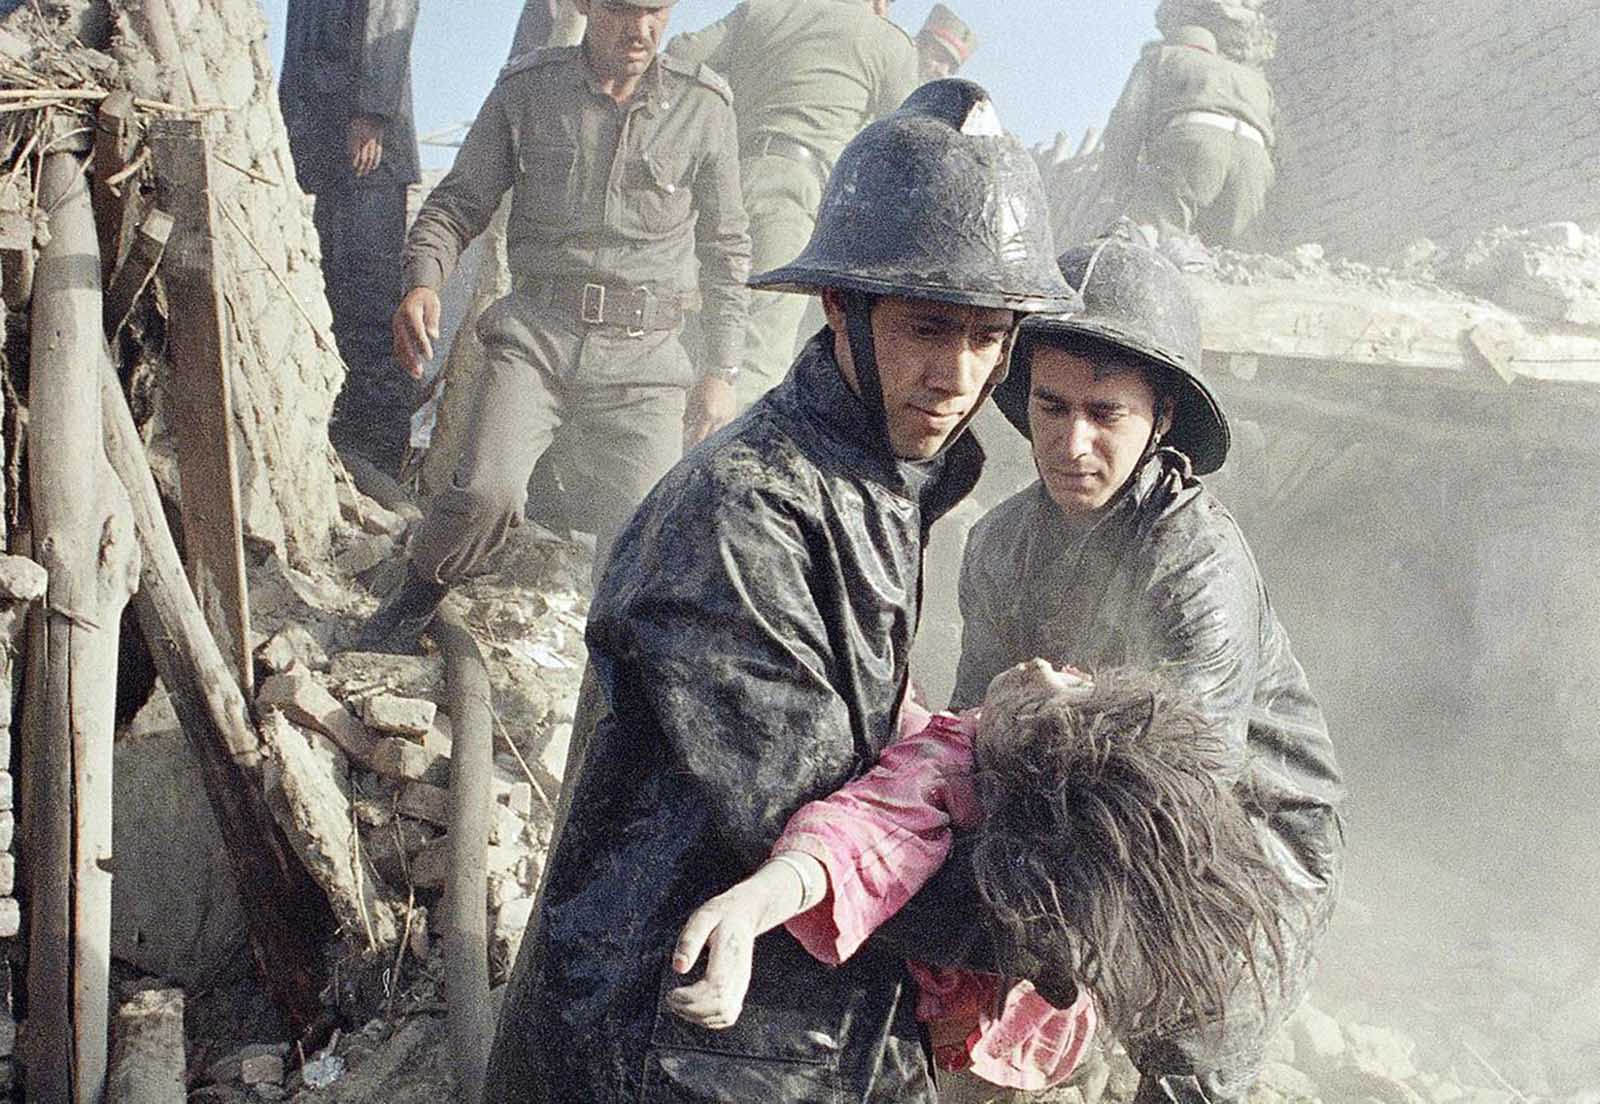 Afghan firefighters carry the body of a young girl killed in a powerful bomb blast that shattered rows of homes and shops in downtown Kabul on May 14, 1988. At least eight people were killed and more than 20 injured by the explosion, believed to be planted in a truck on the eve of the Soviet withdrawal from Afghanistan.